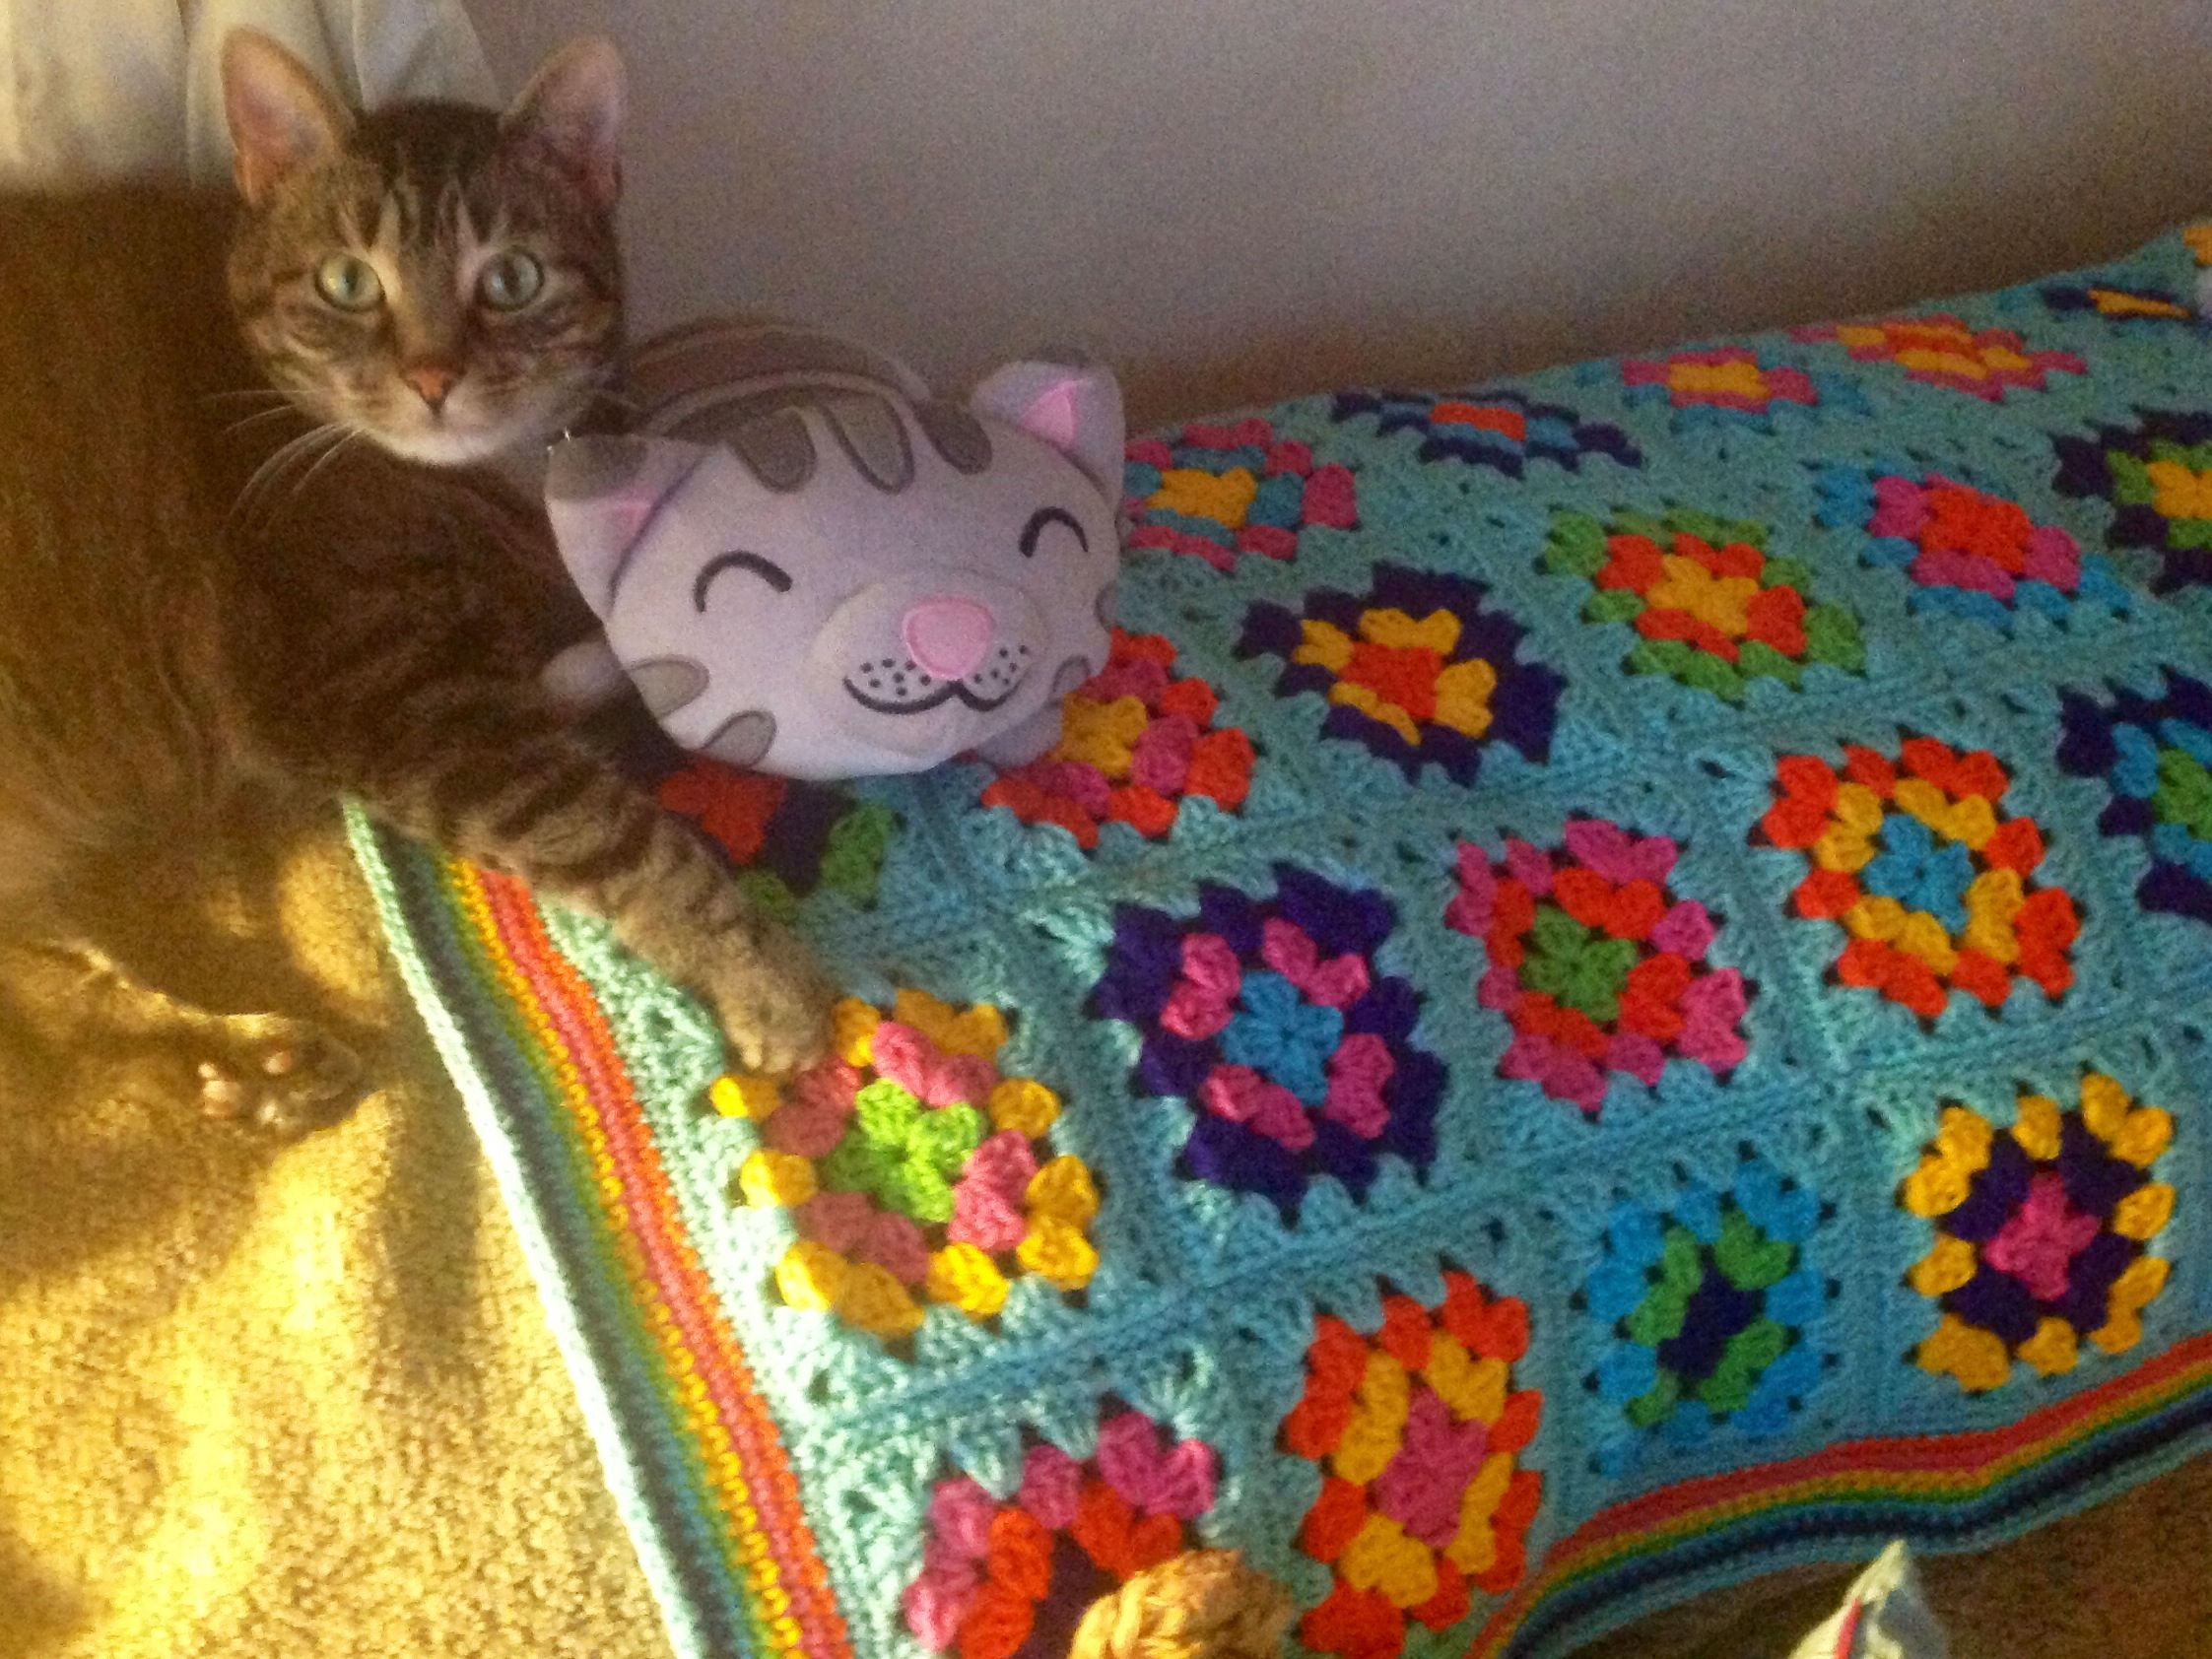 Mr. Bojangles loves to lay on crocheted afghans.